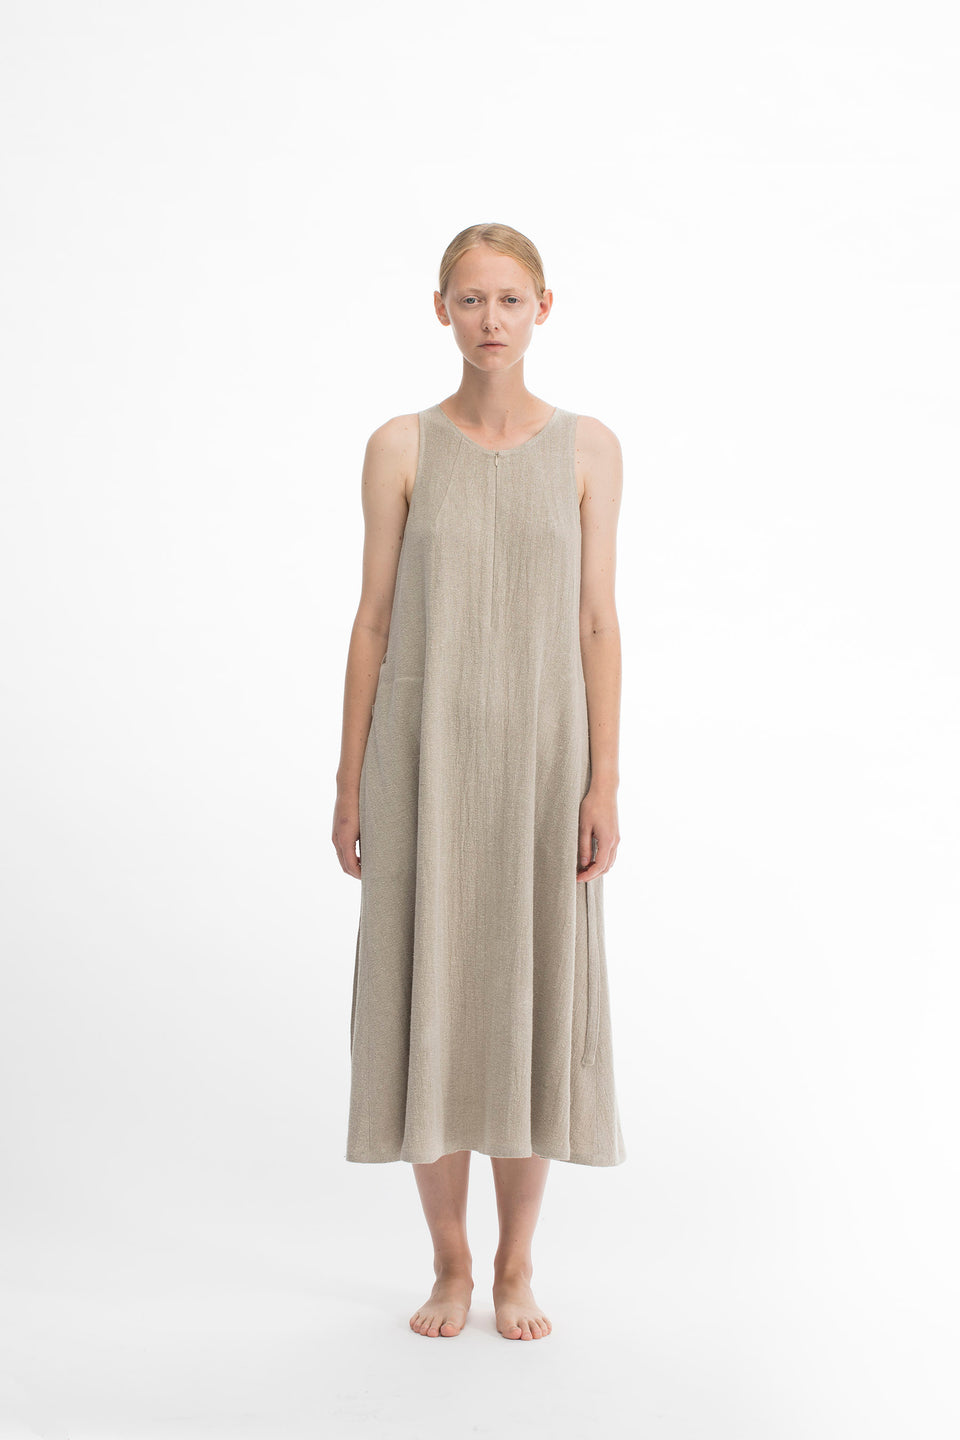 RAW Women Comfort Dress Natural